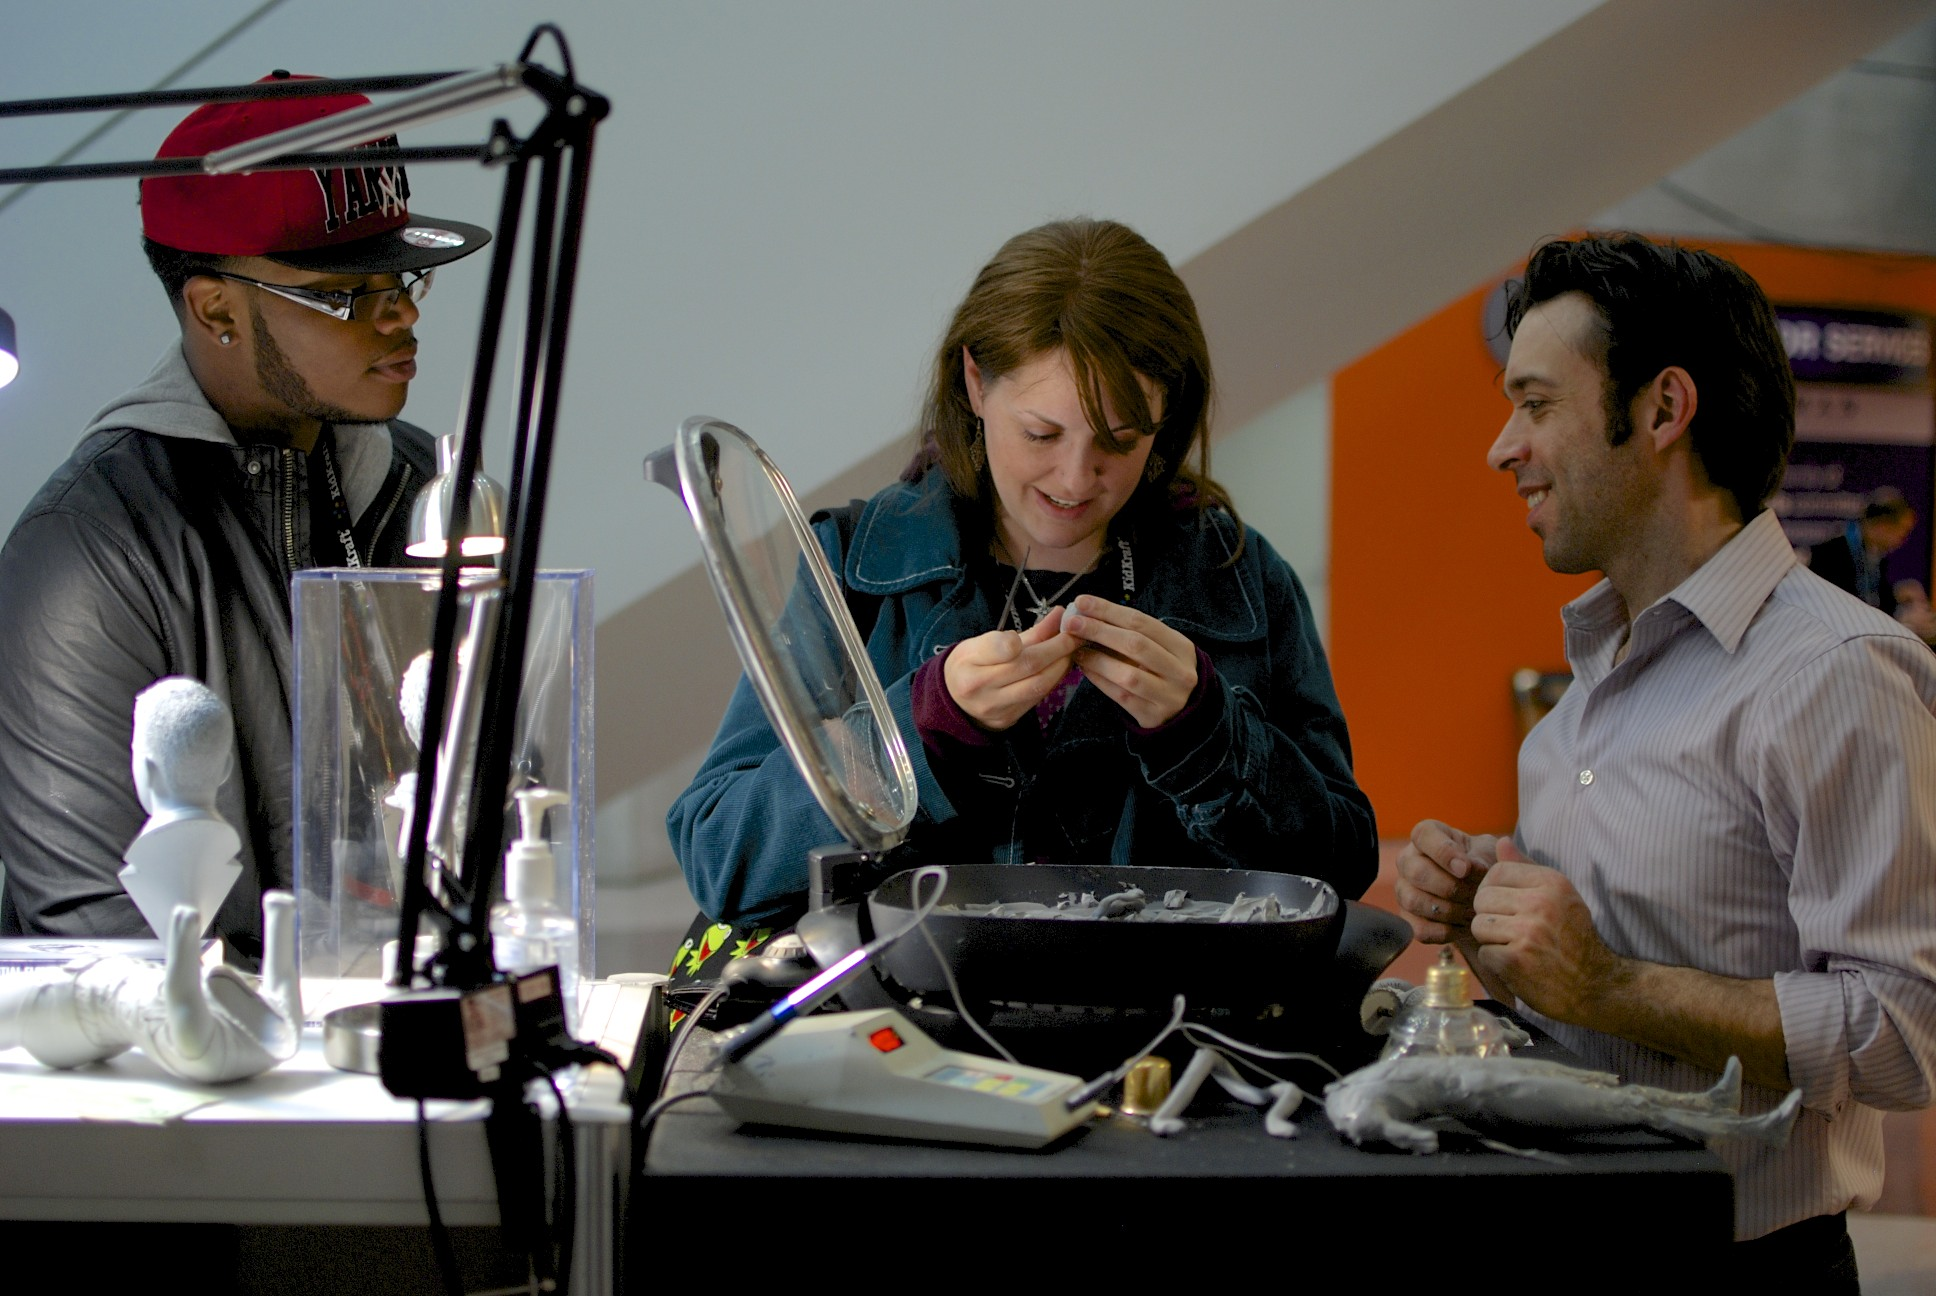 Big smiles when sculpting in Cx5 for the first time